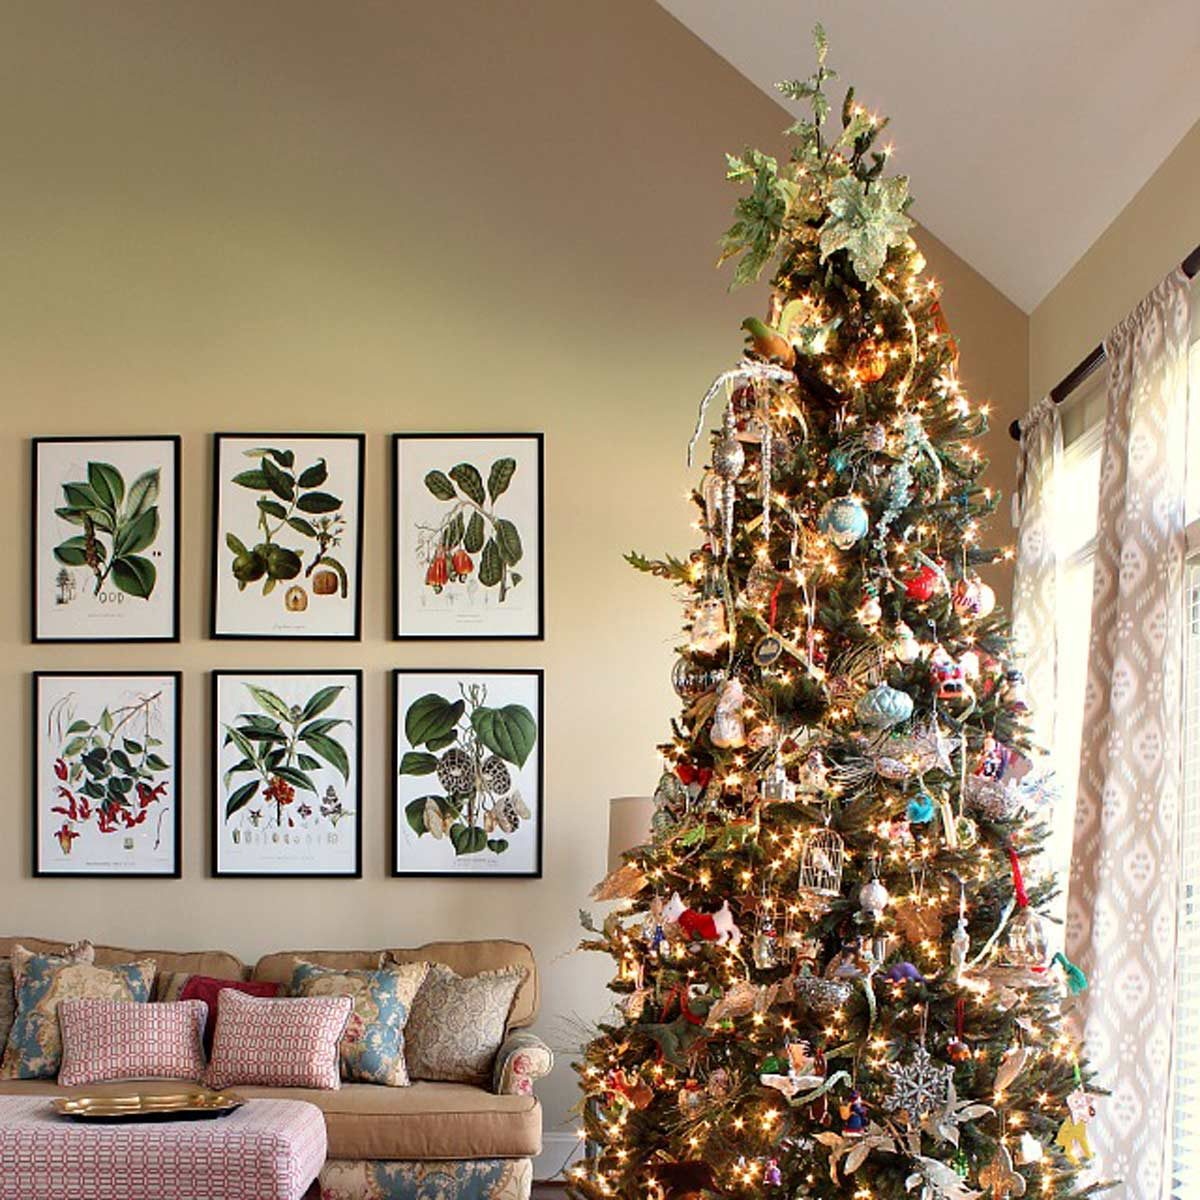 100 Incredible Christmas Tree Decorating Ideas The Family Handyman